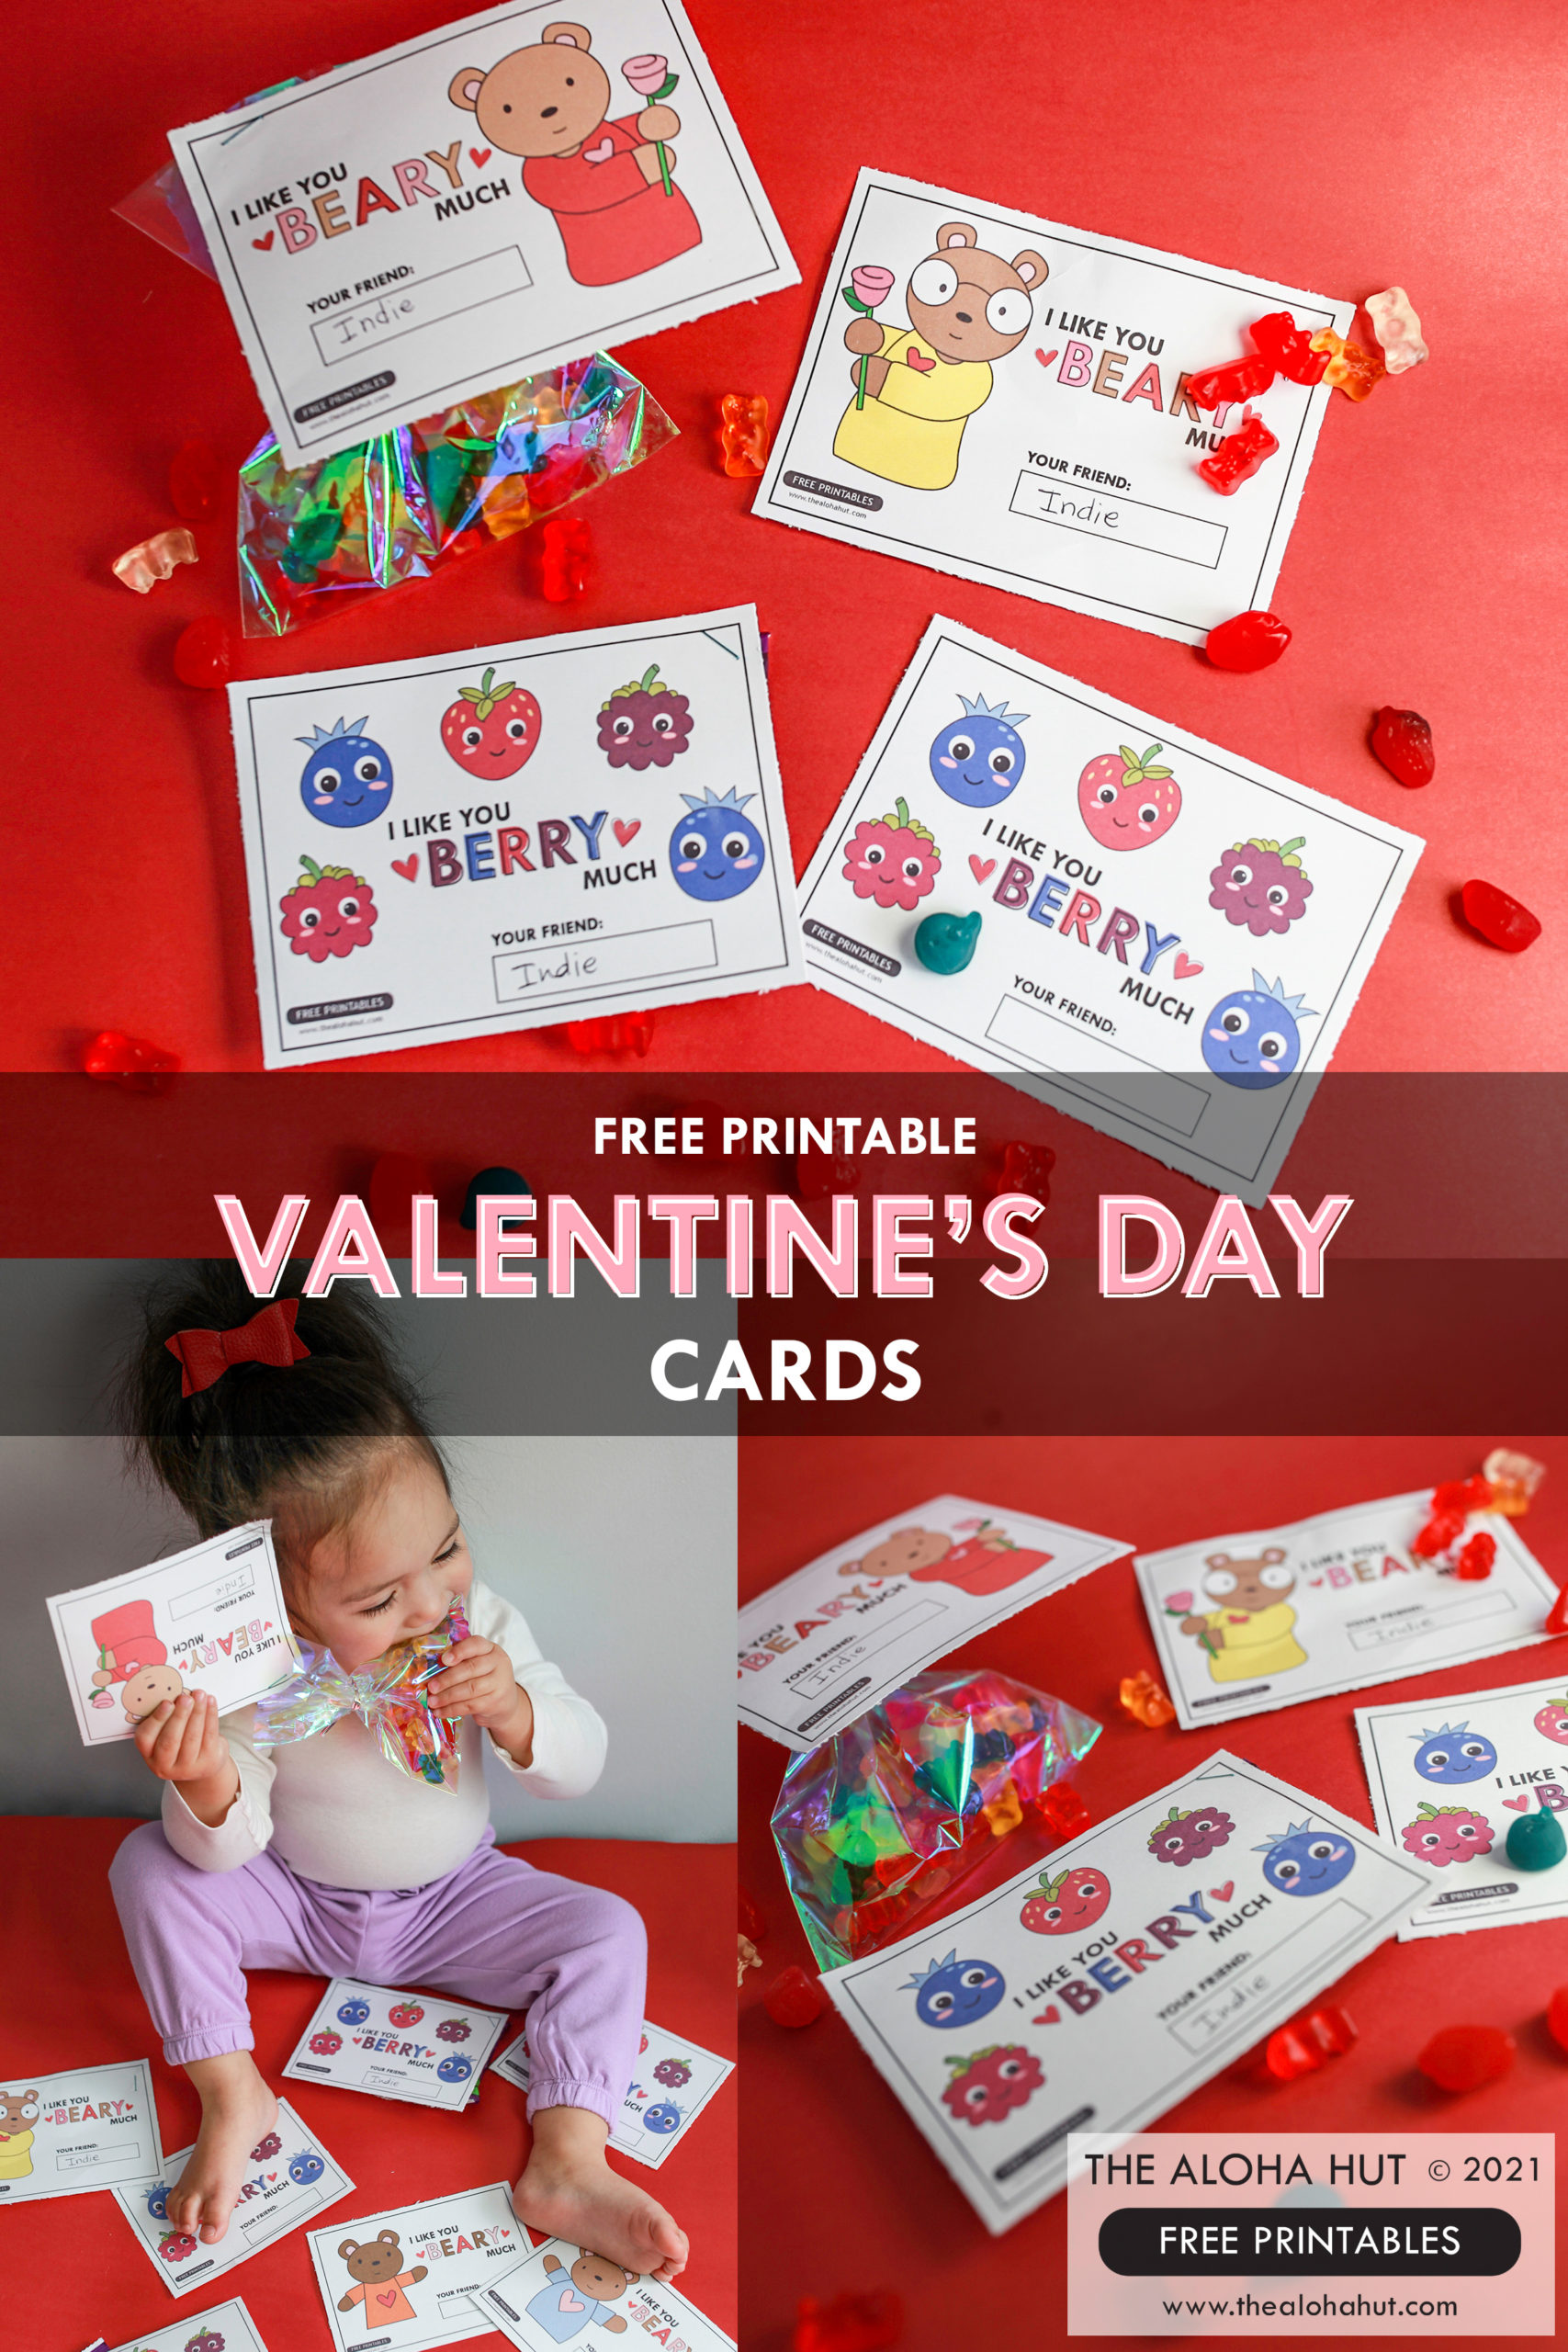 Super Cute VALENTINE'S DAY Cards by the Aloha Hut - Free Printable